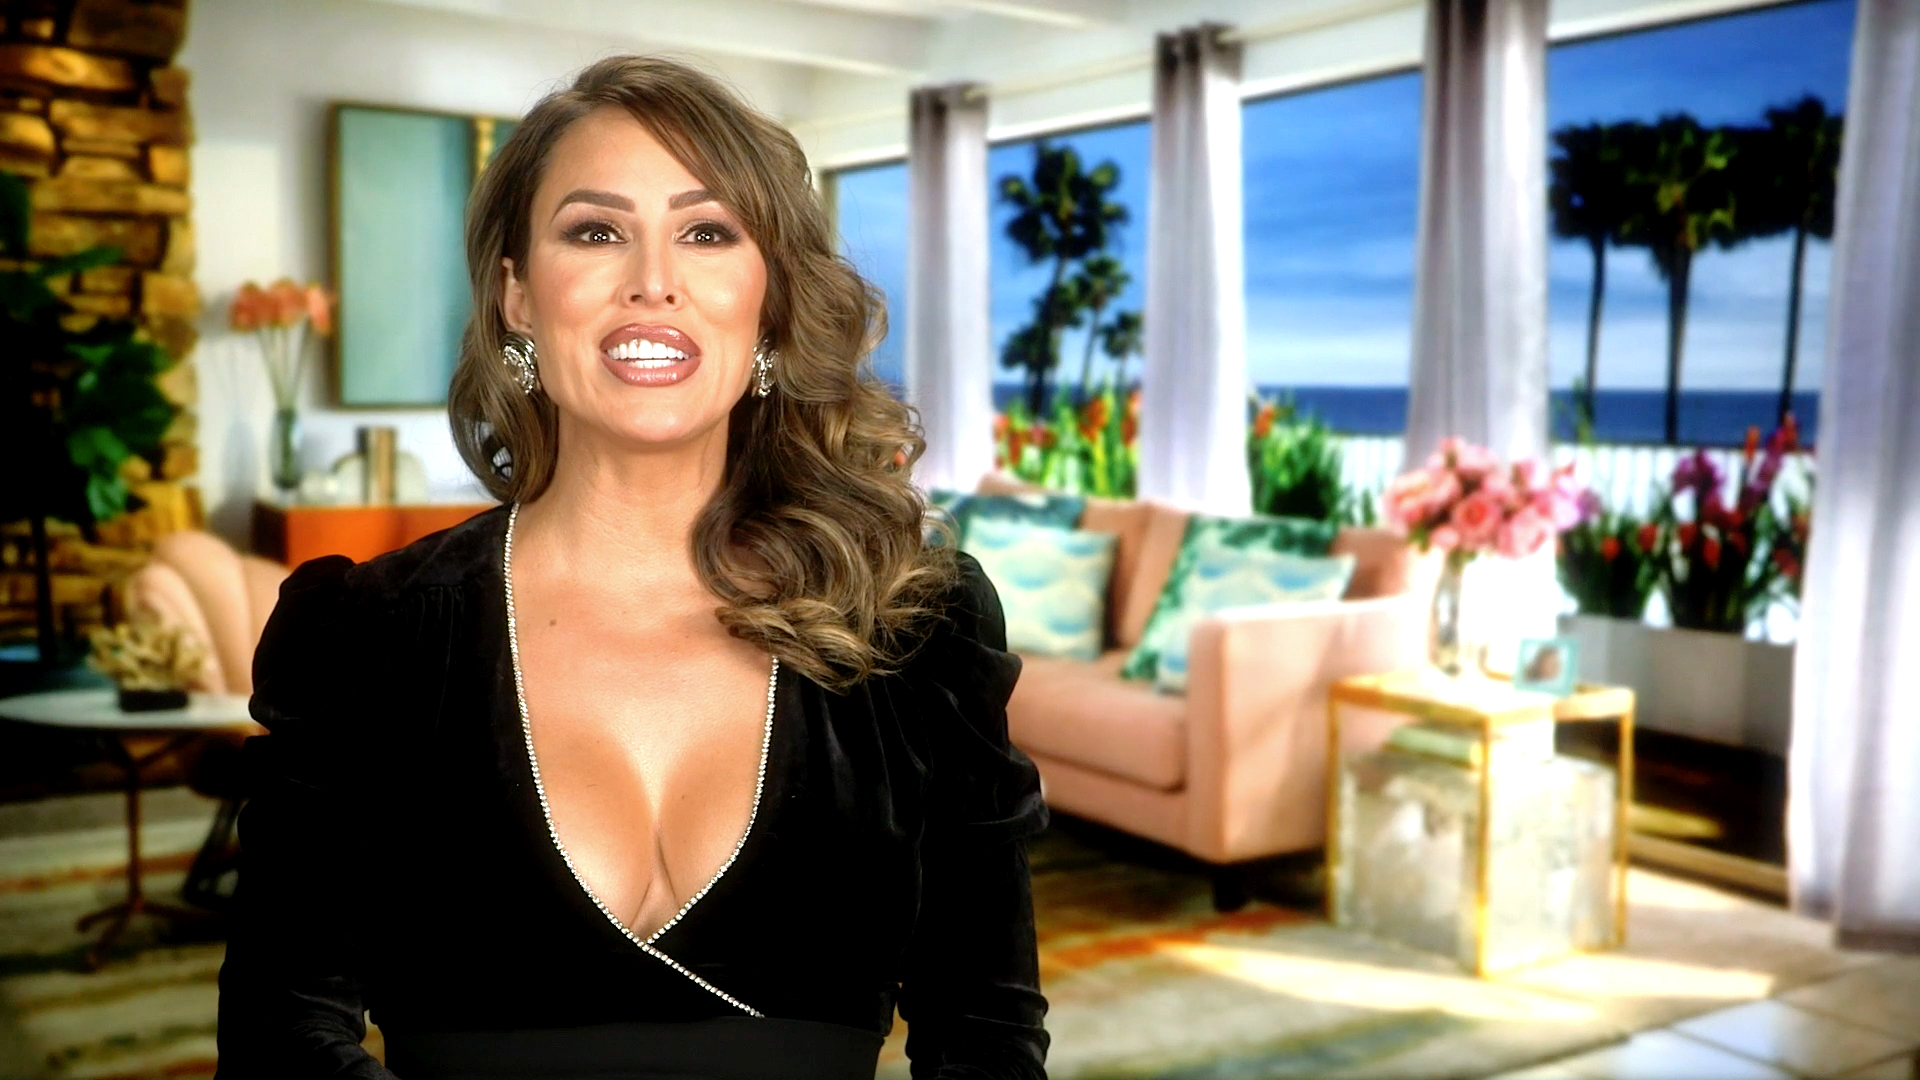 Kelly Dodd and a Producer Reveal the Hardest Part of Working on RHOC